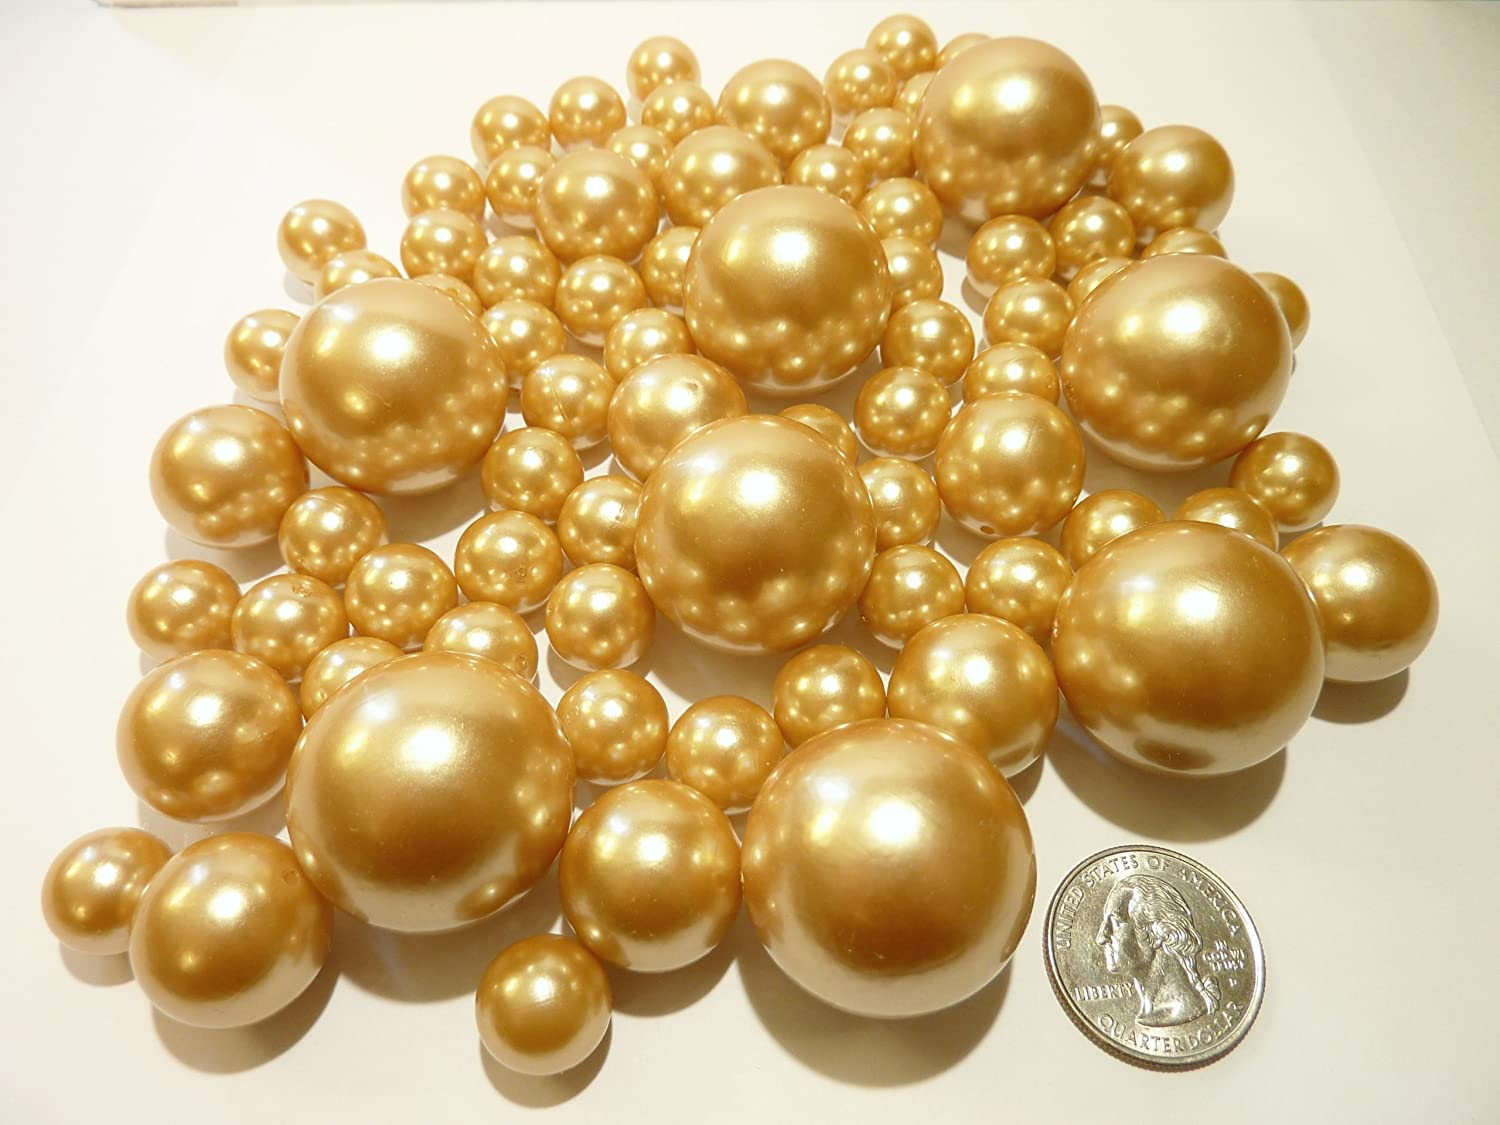 Unique Jumbo & Assorted Sizes 80 Pieces All Gold Pearls Value Pack Vase Fillers